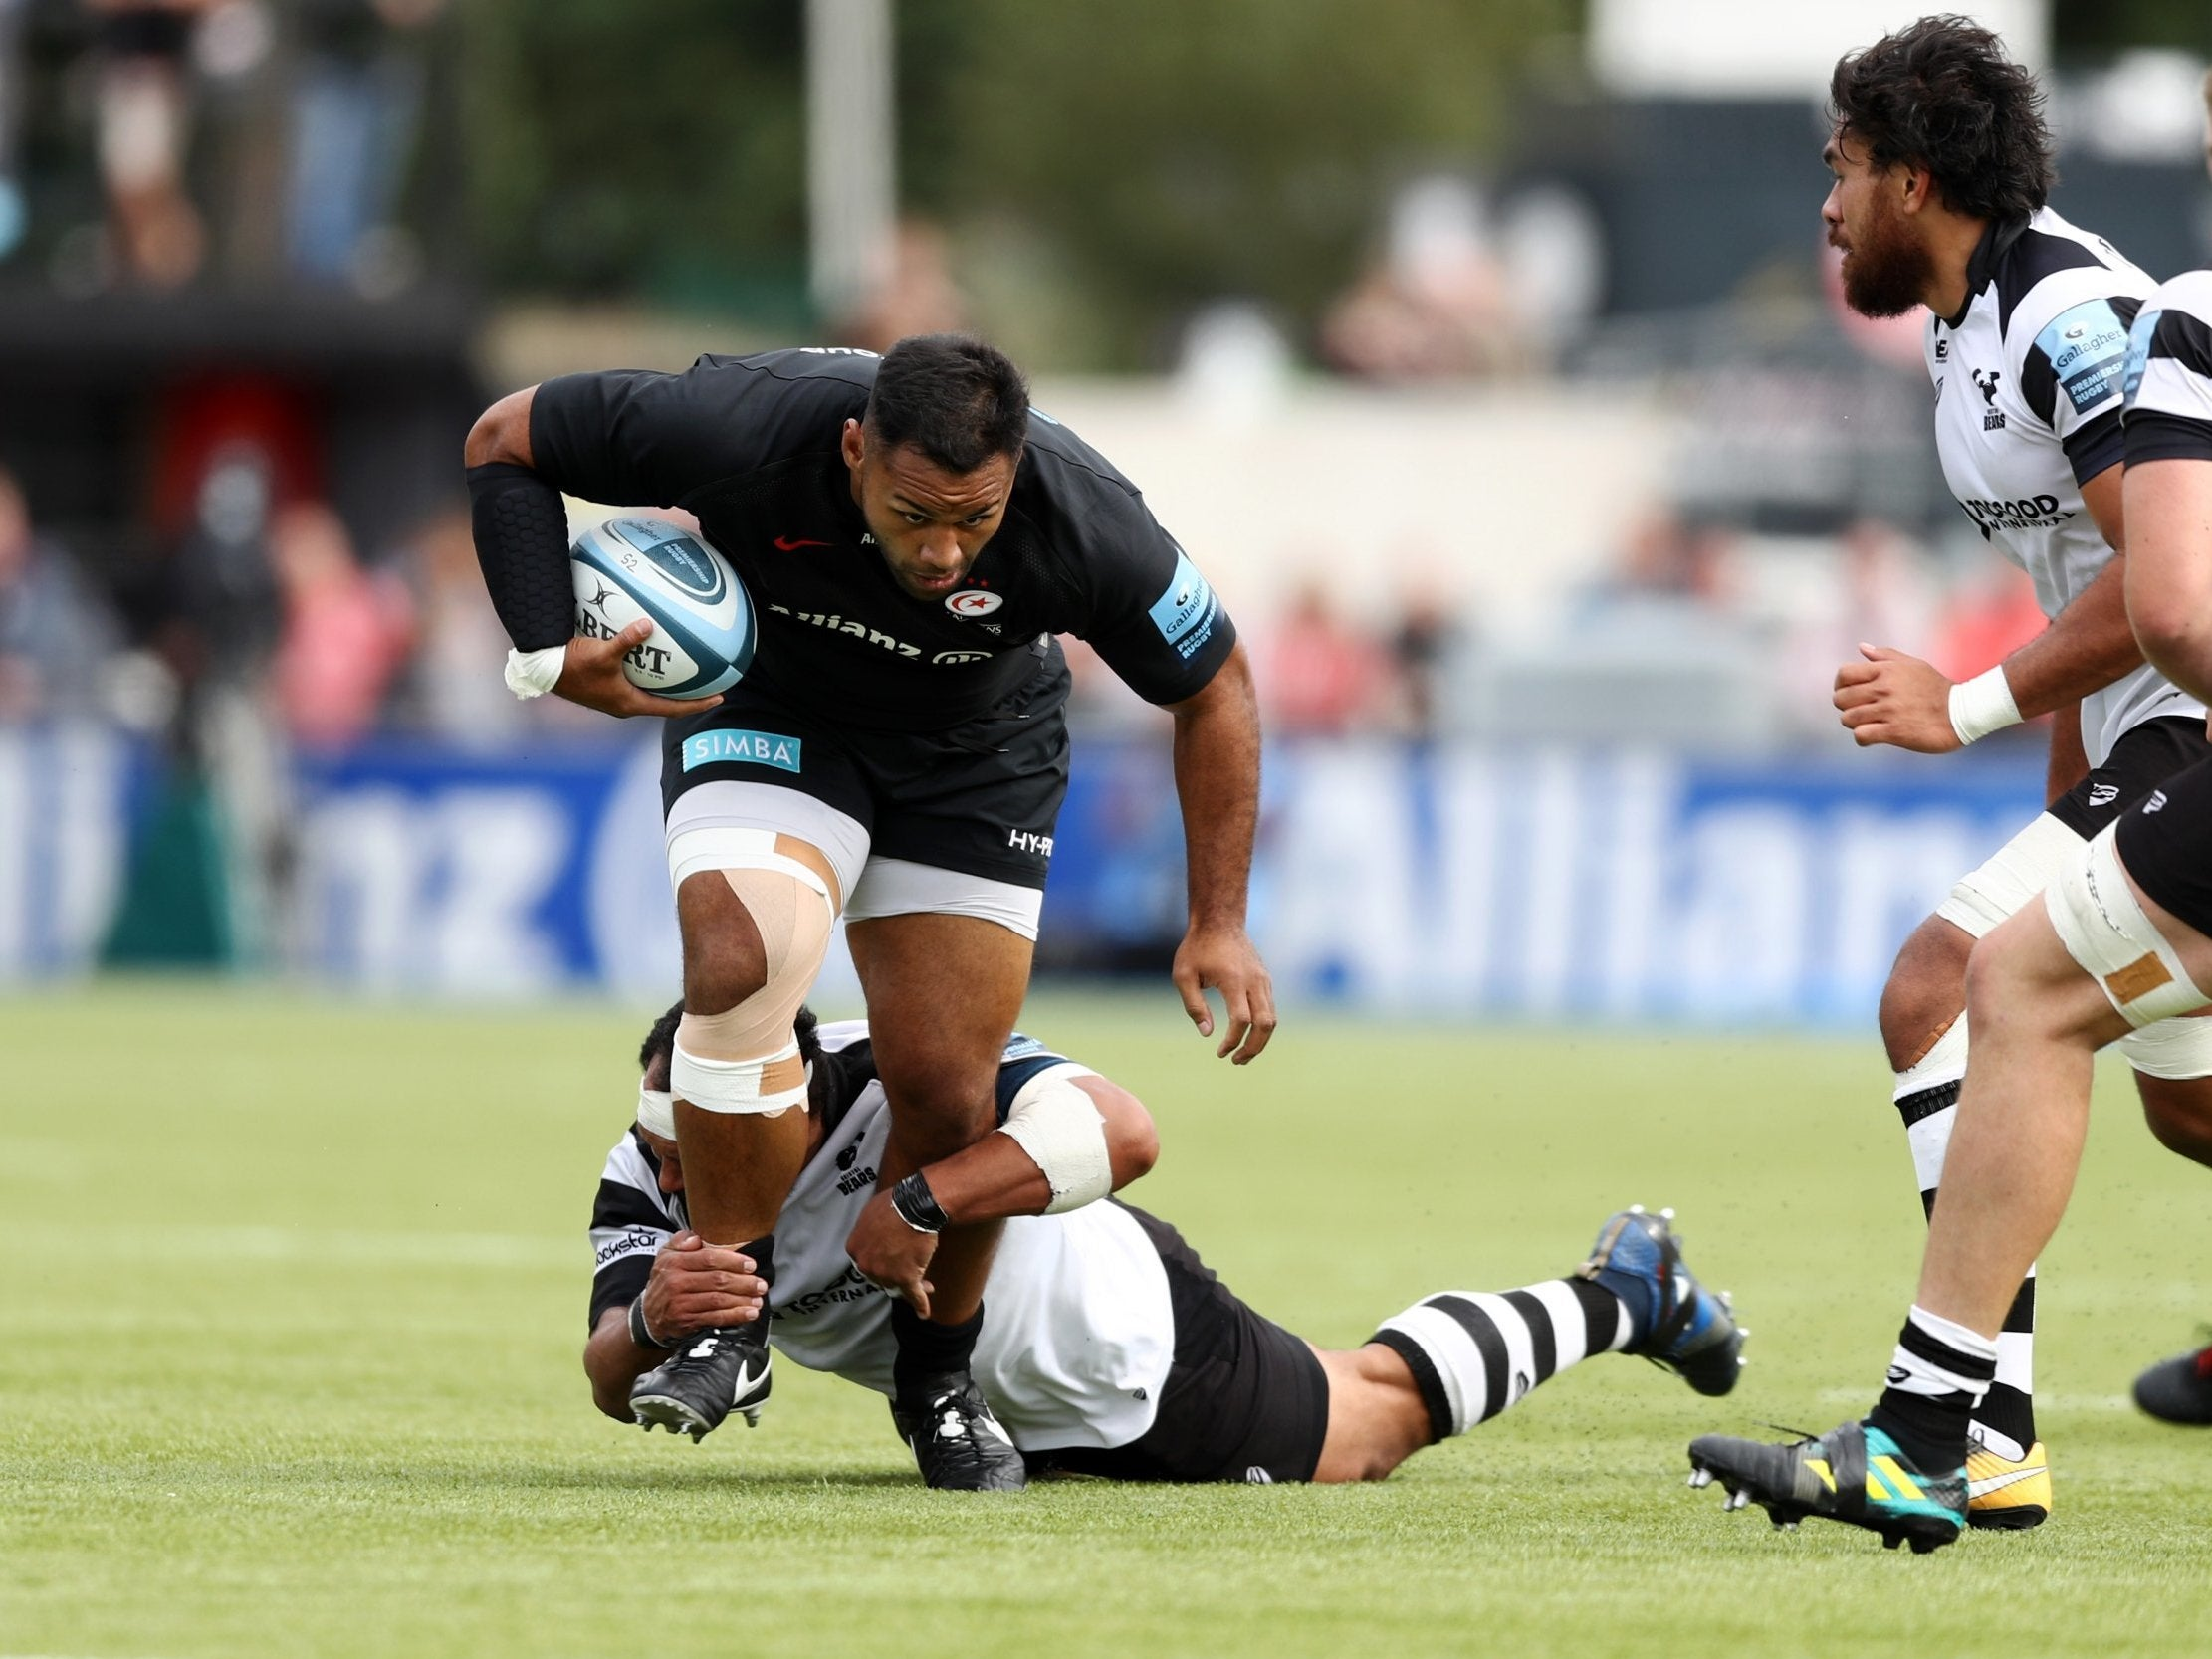 Forum on this topic: Build your body like Billy Vunipola, build-your-body-like-billy-vunipola/